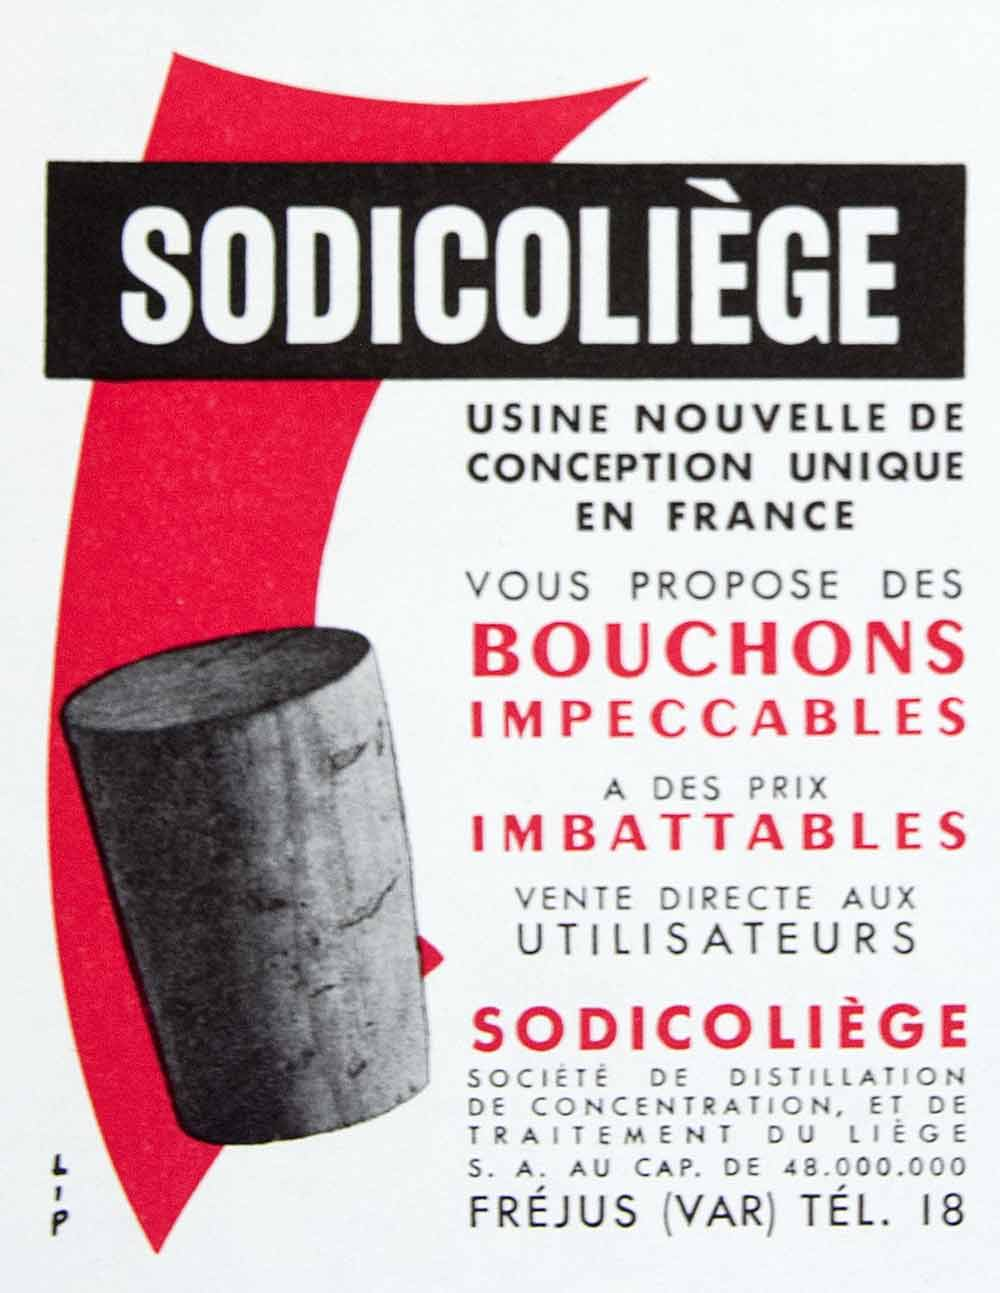 1956 Ad Sodicoliege Corks French Bouchons Red Frejus Vendor Distillers VEN6